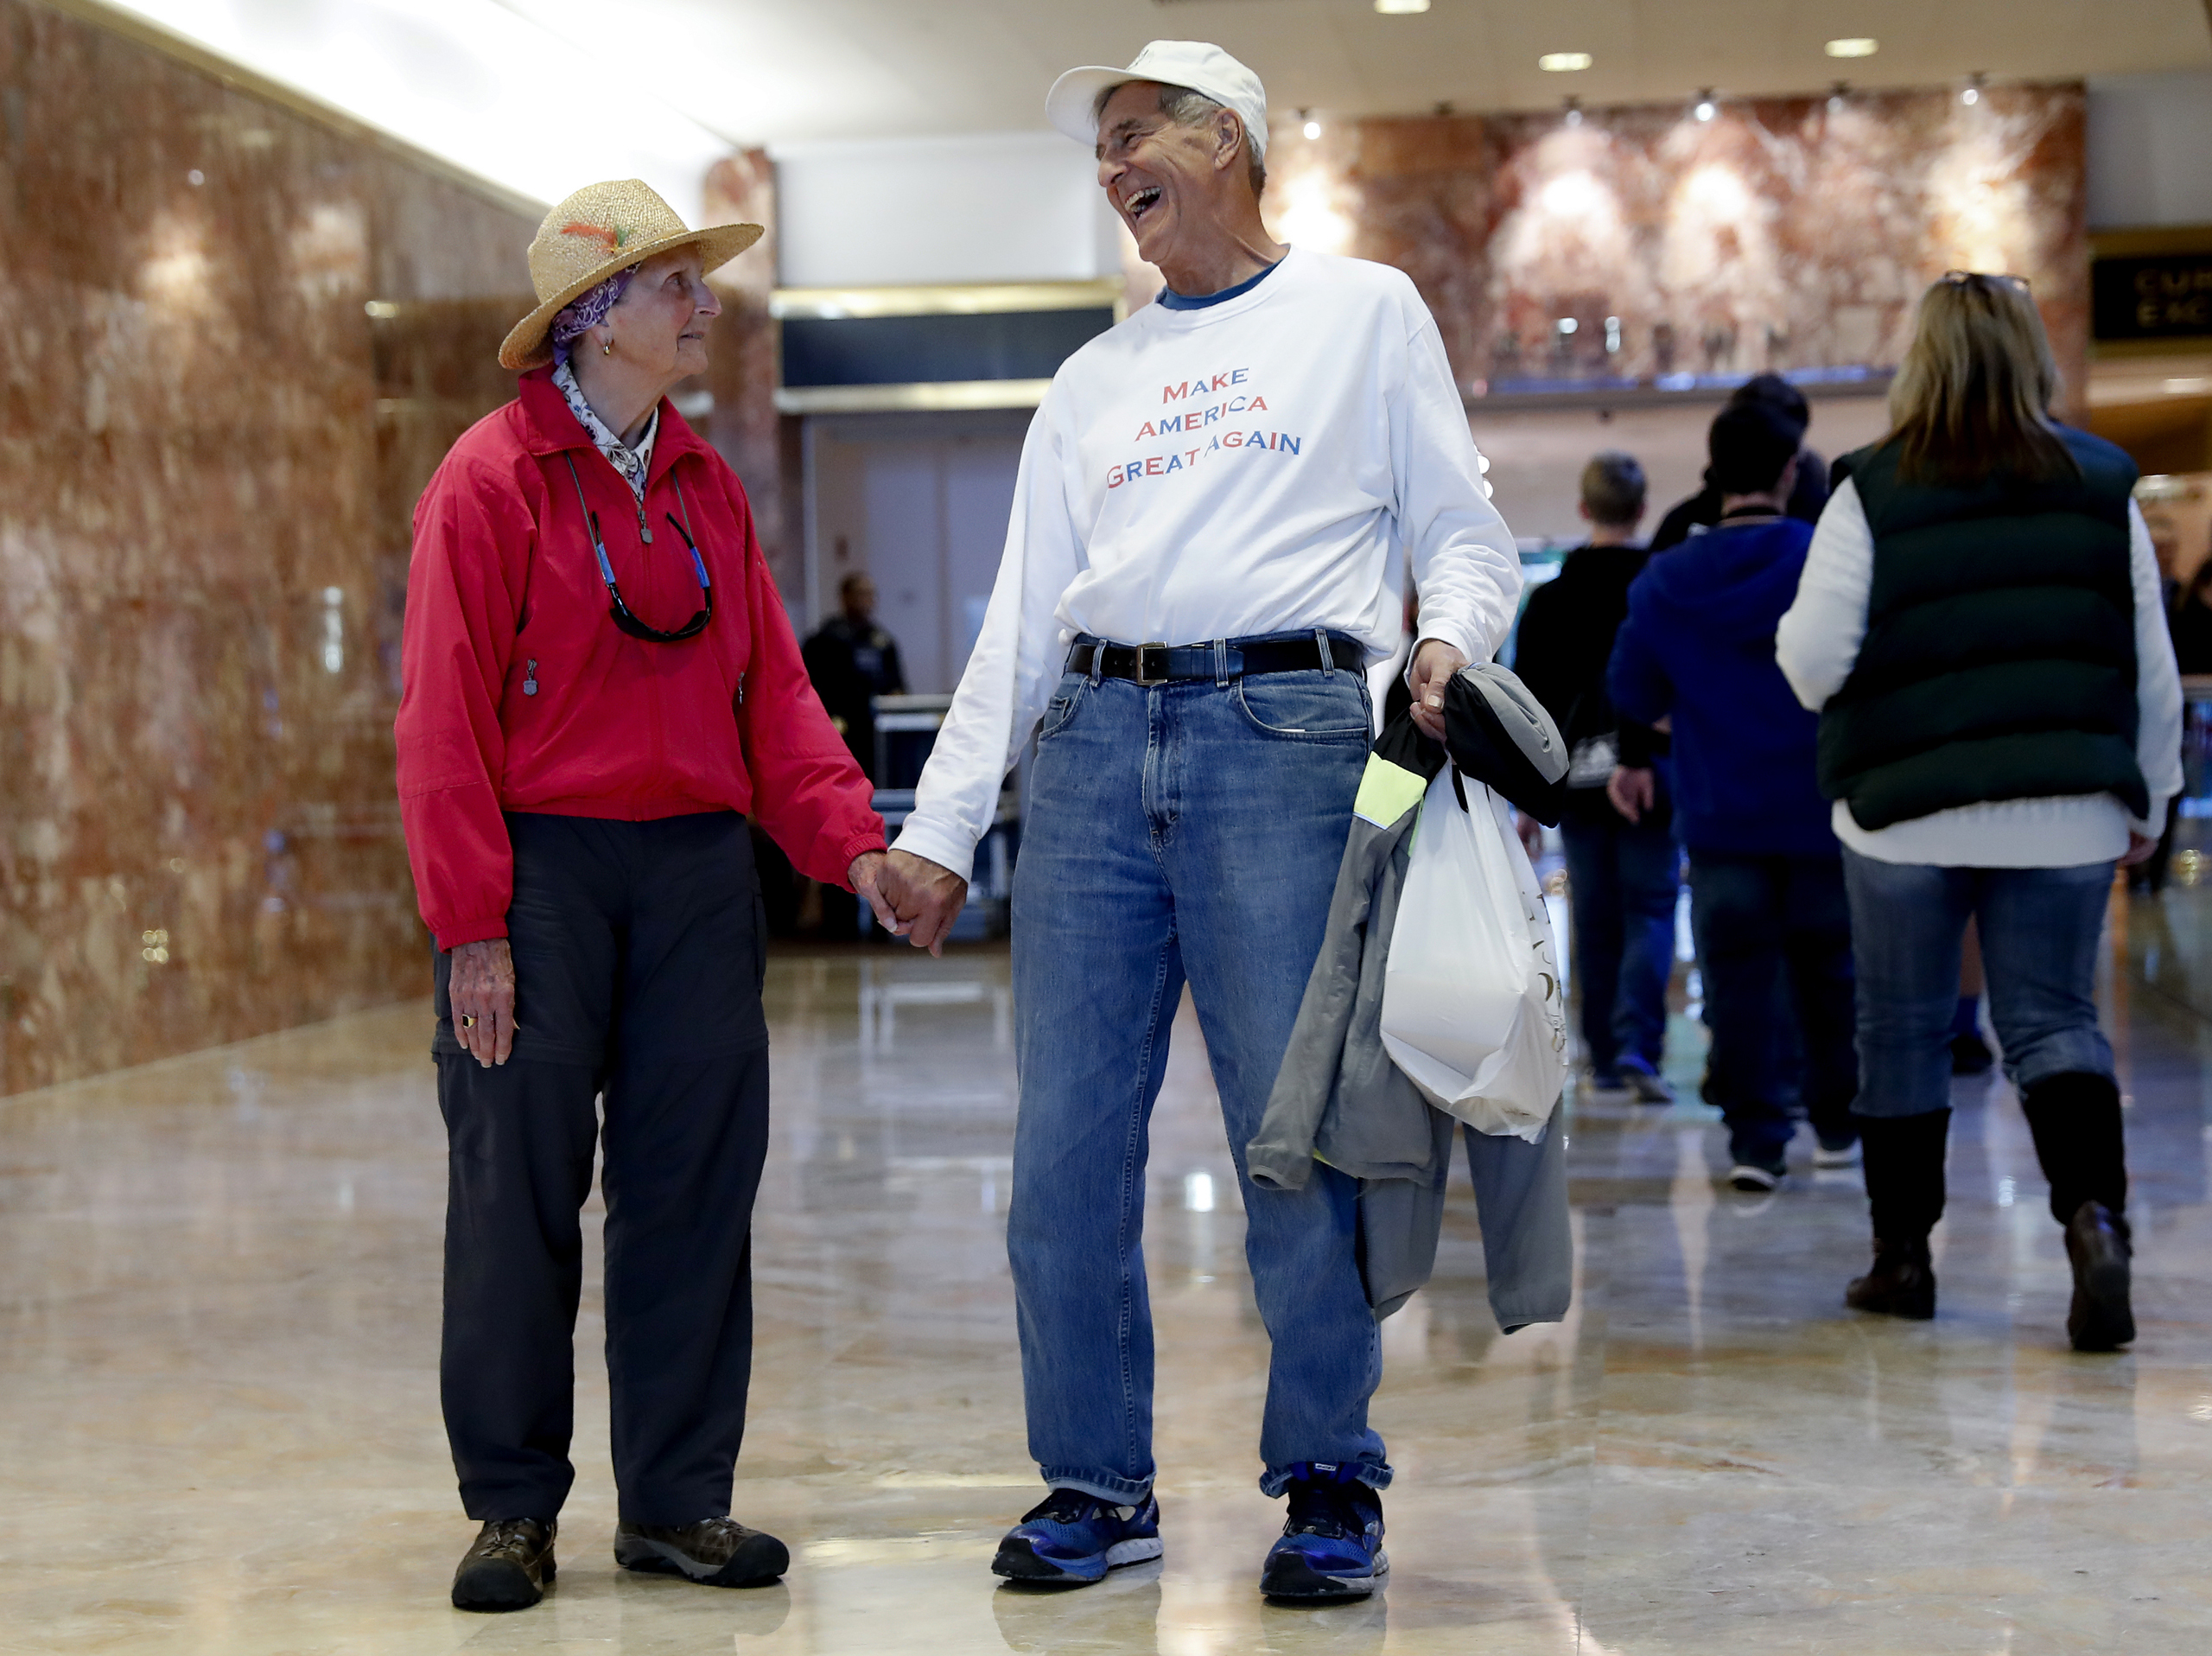 President-elect Donald Trump supporters Tom and Barbara Bechler of Calif., stand hand-in-hand as they visit the lobby of Trump Tower, on Nov. 17, 2016.